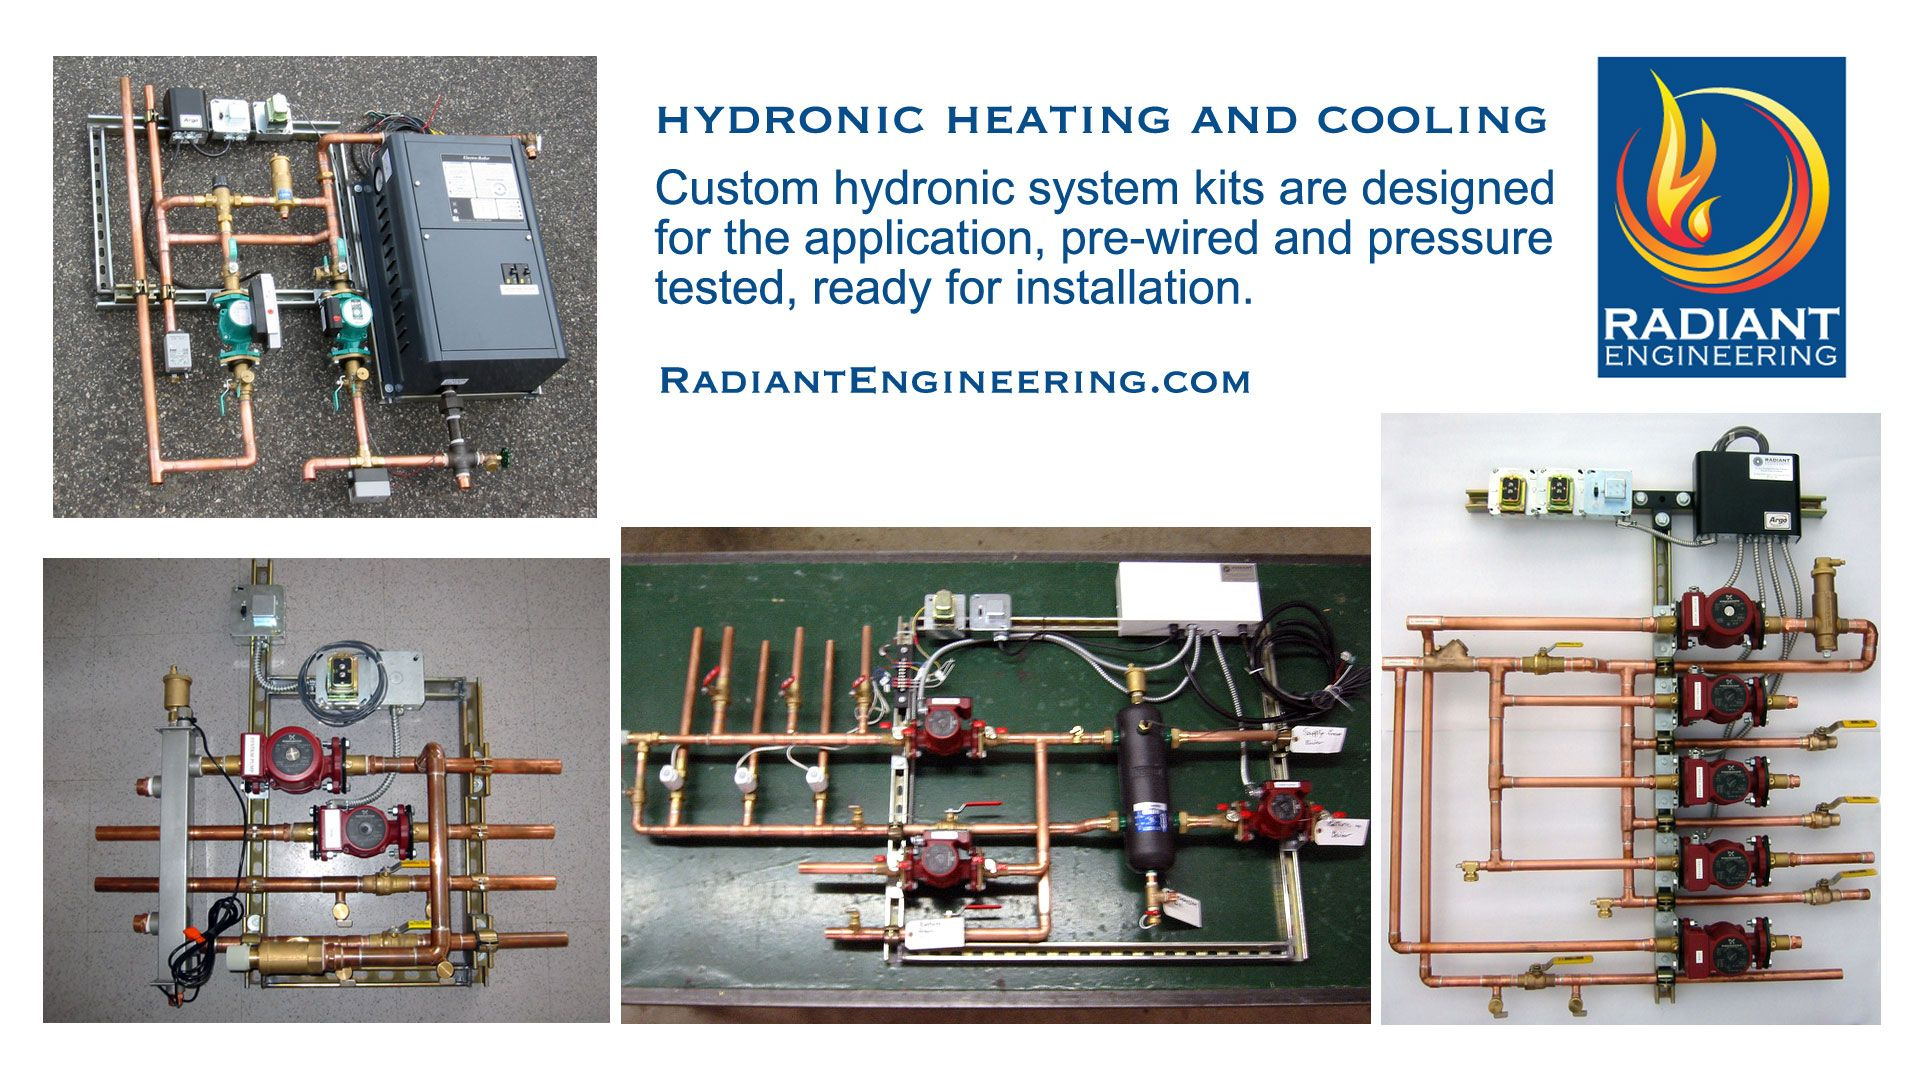 Cooling And Heating Your Home Hydronically Custom Hydronic